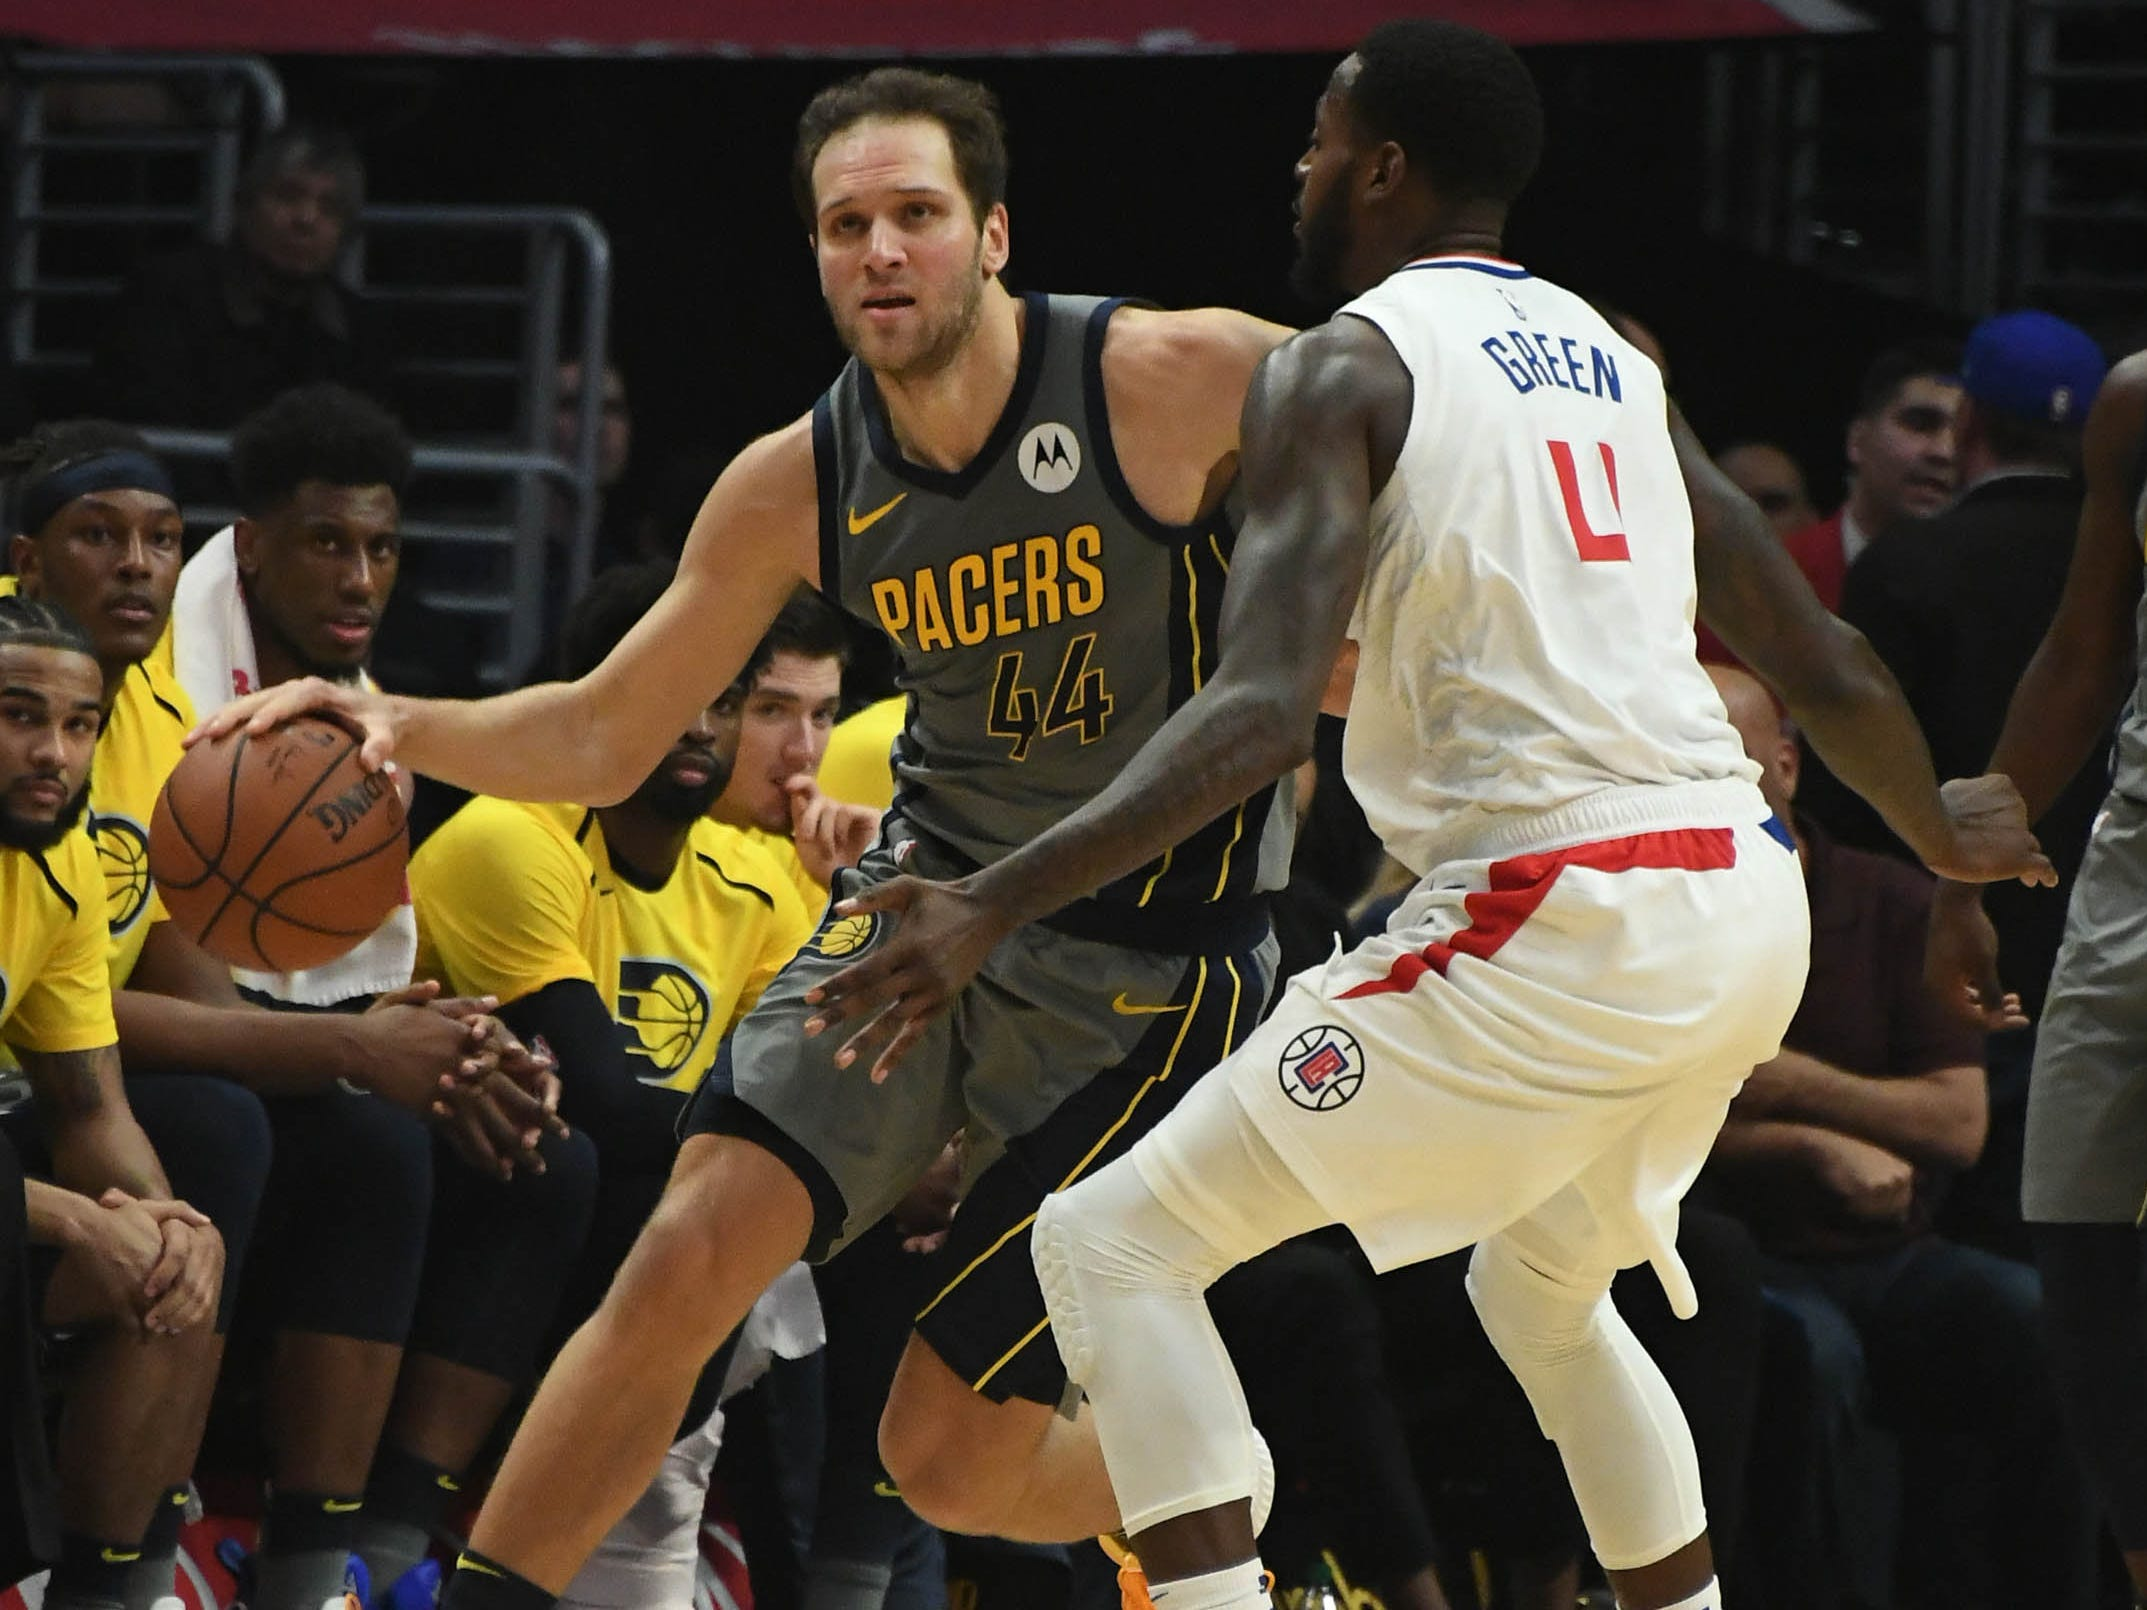 Mar 19, 2019; Los Angeles, CA, USA; Indiana Pacers forward Bojan Bogdanovic (44) controls the ball against LA Clippers forward JaMychal Green (4) in the first half at the Staples Center.